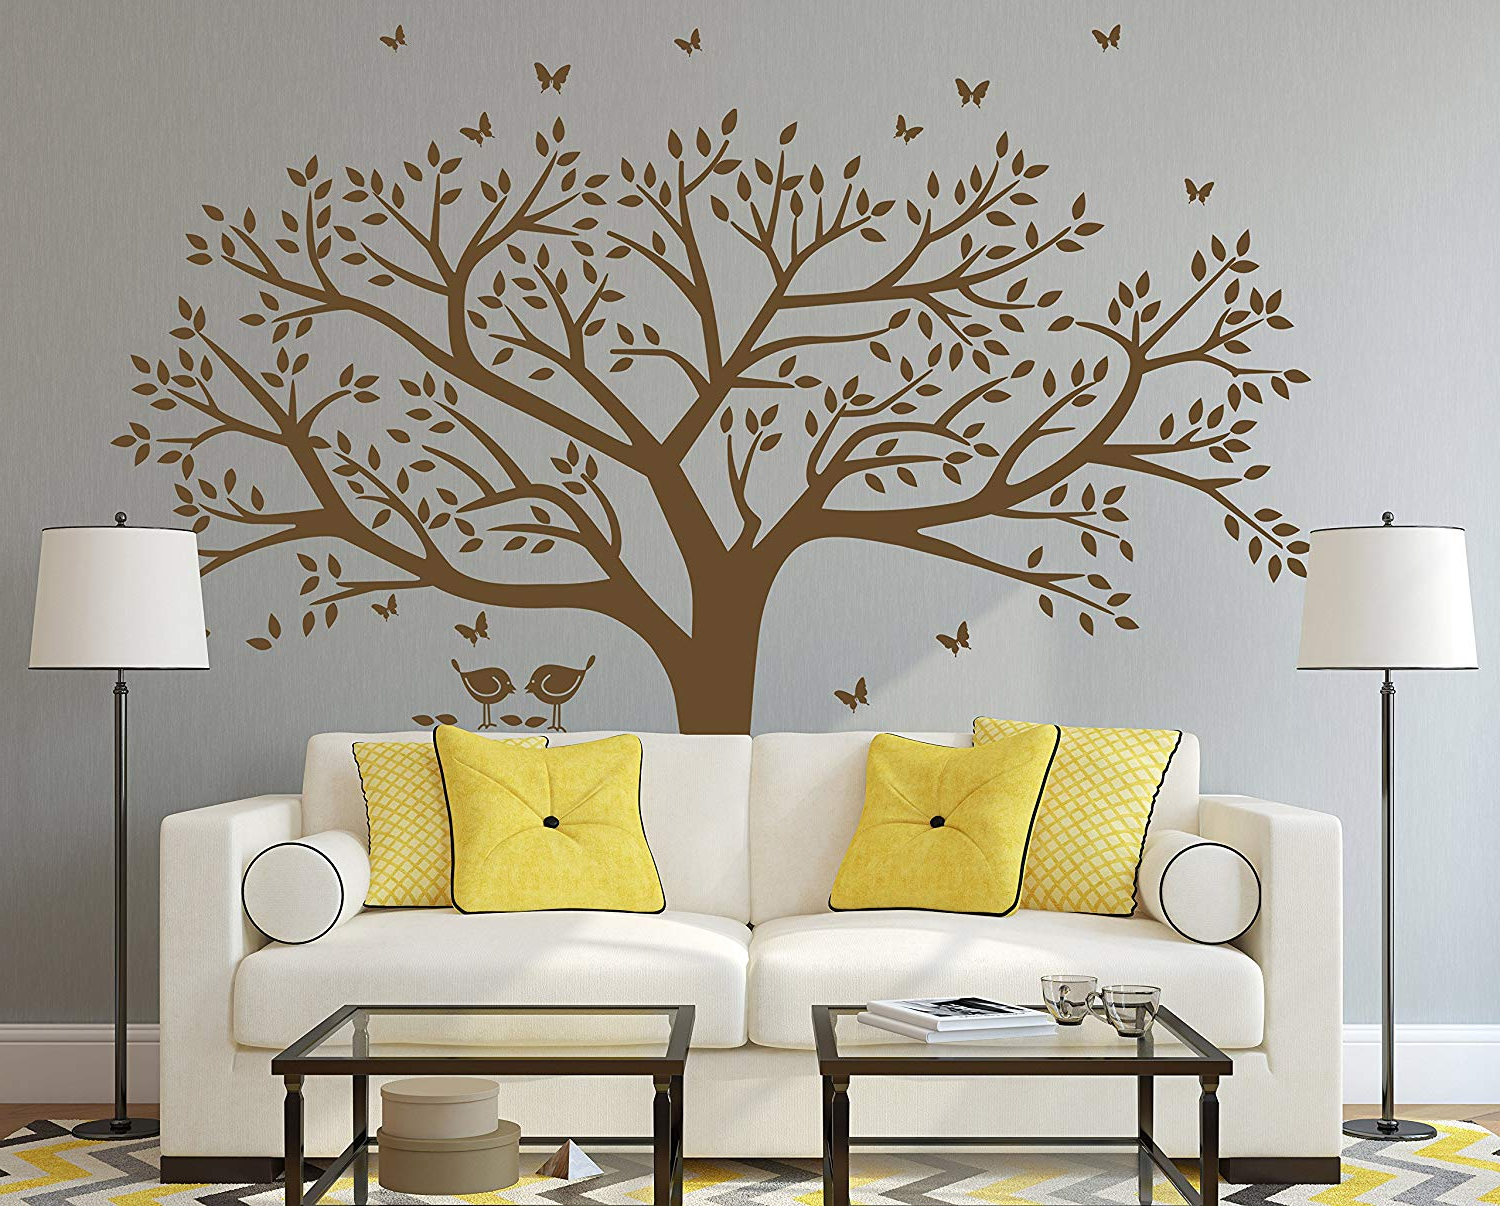 Trendy Amazon: Anber Family Tree Wall Decal Butterflies And Birds Wall With Tree Wall Decor (Gallery 17 of 20)